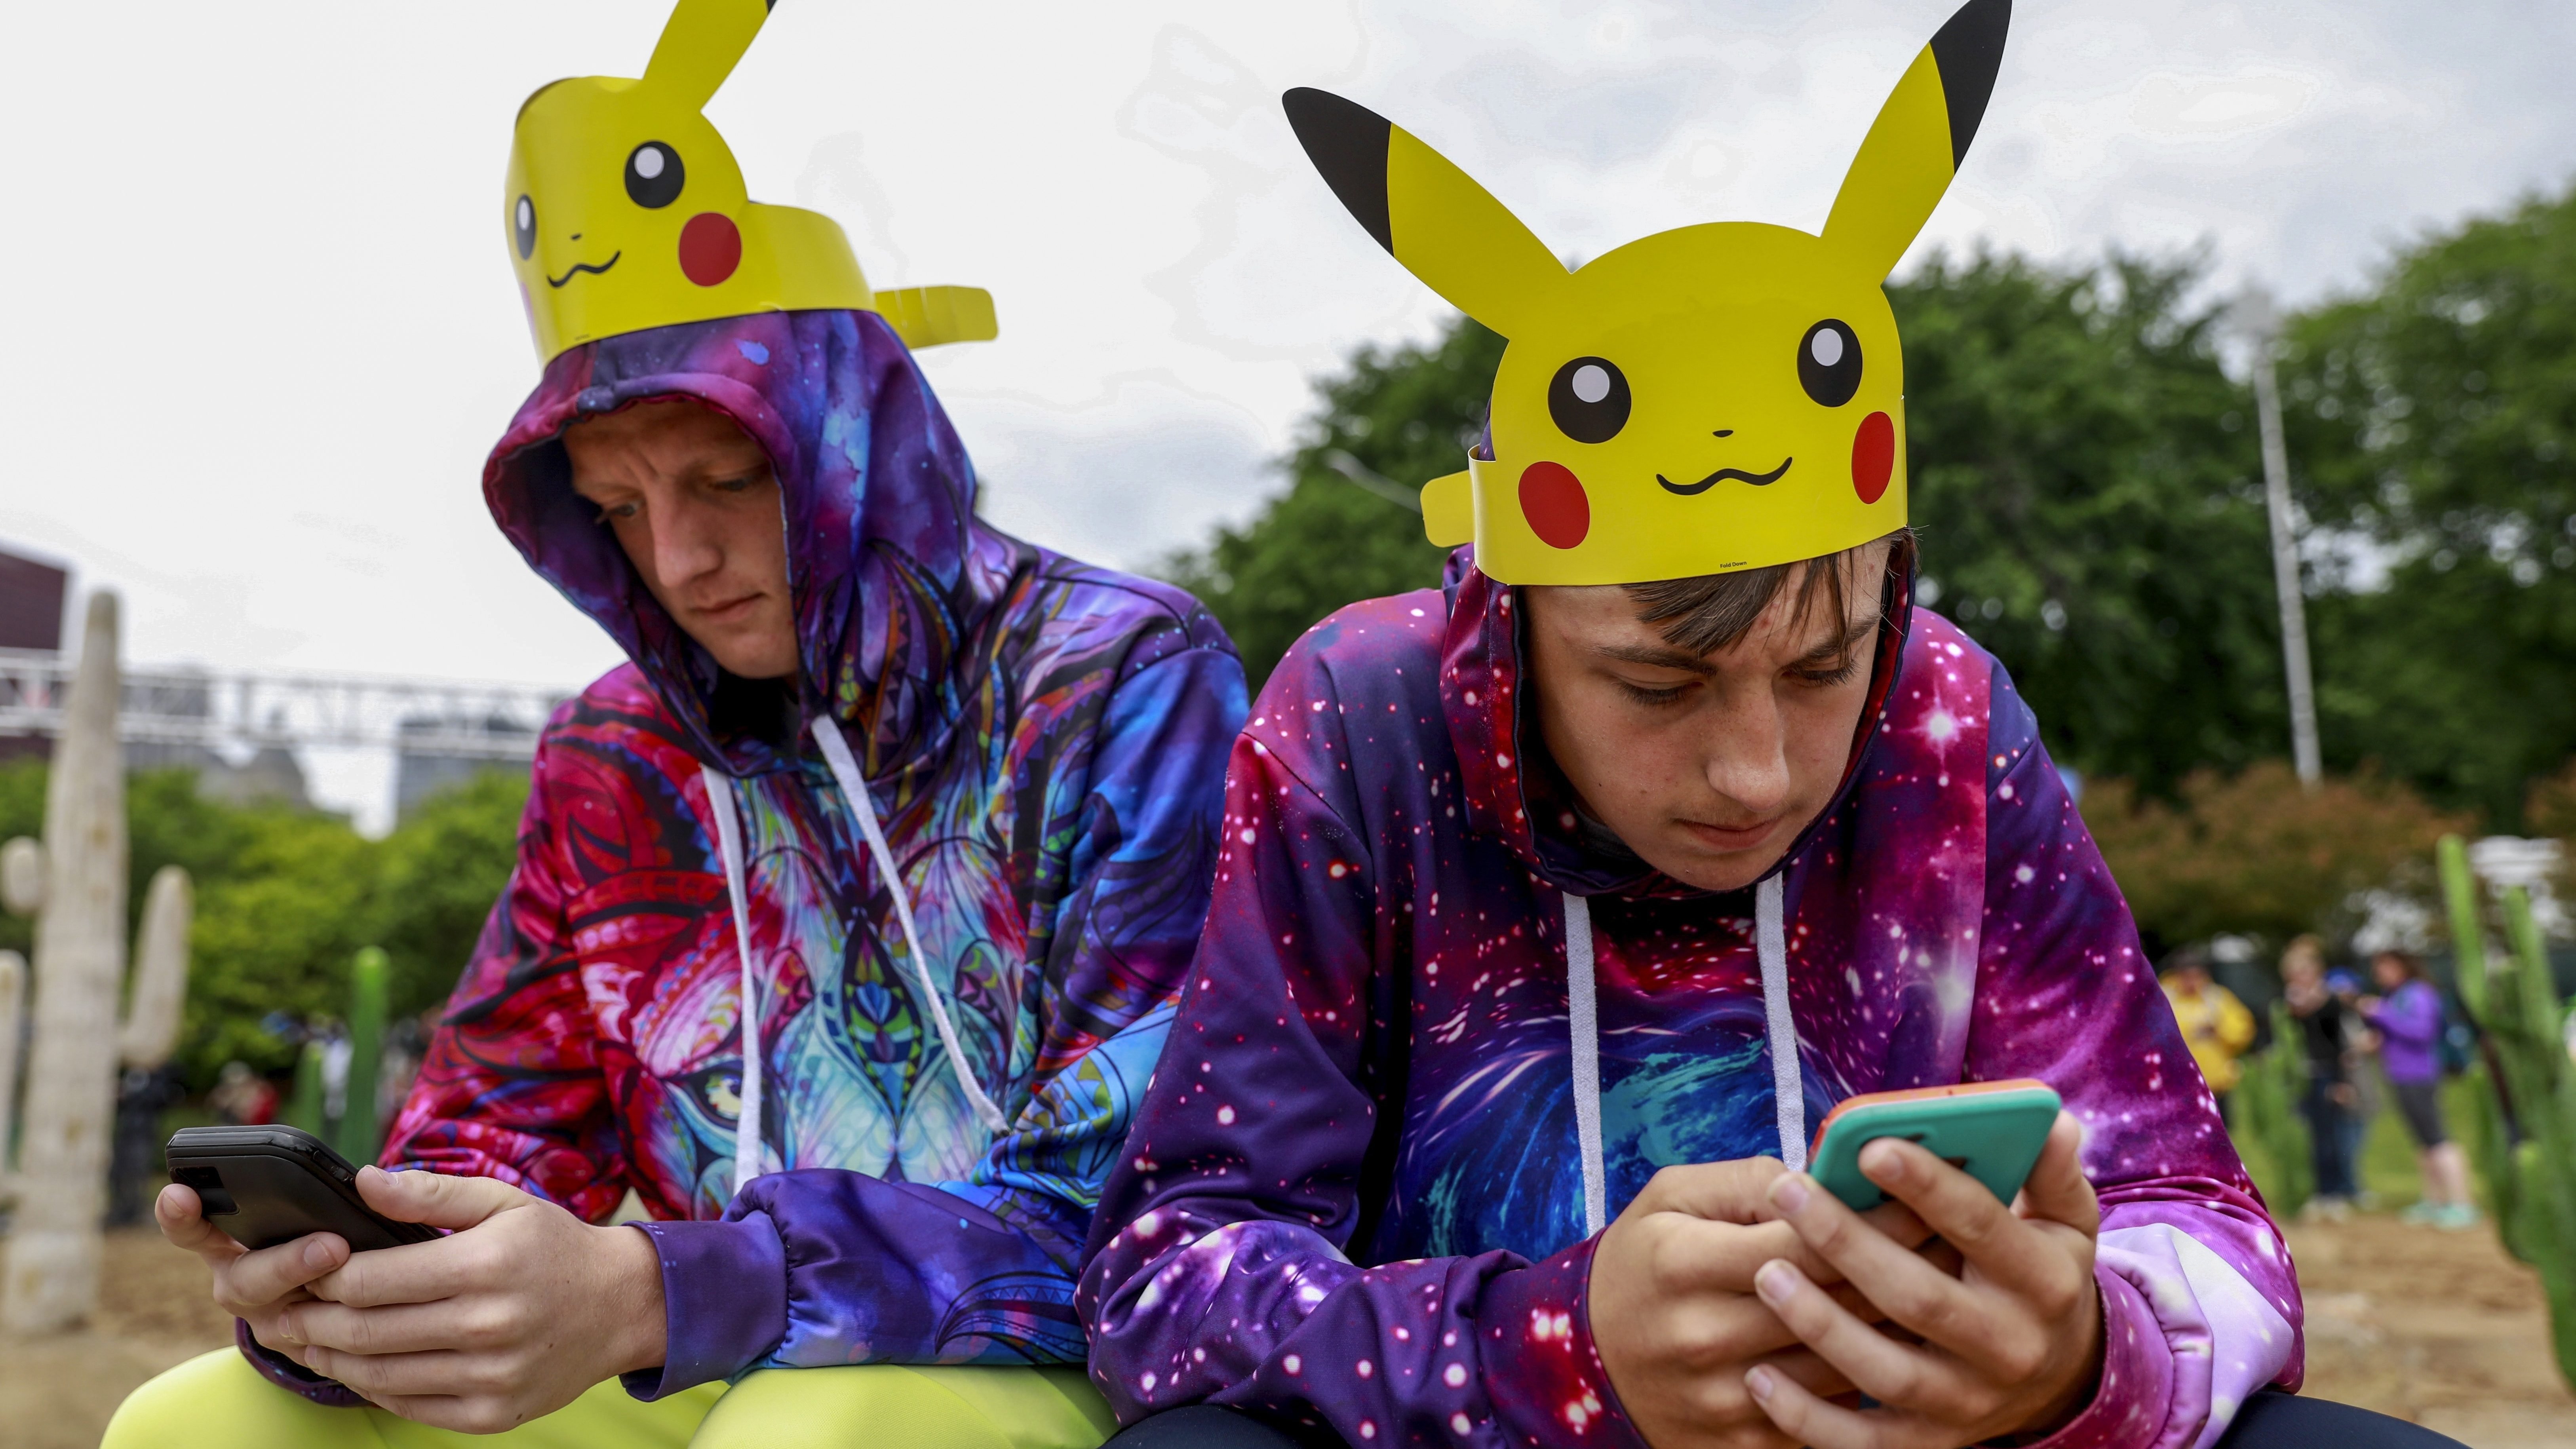 Two brothers in hoodies and Pikachu hats play Pokemon Go on their phones